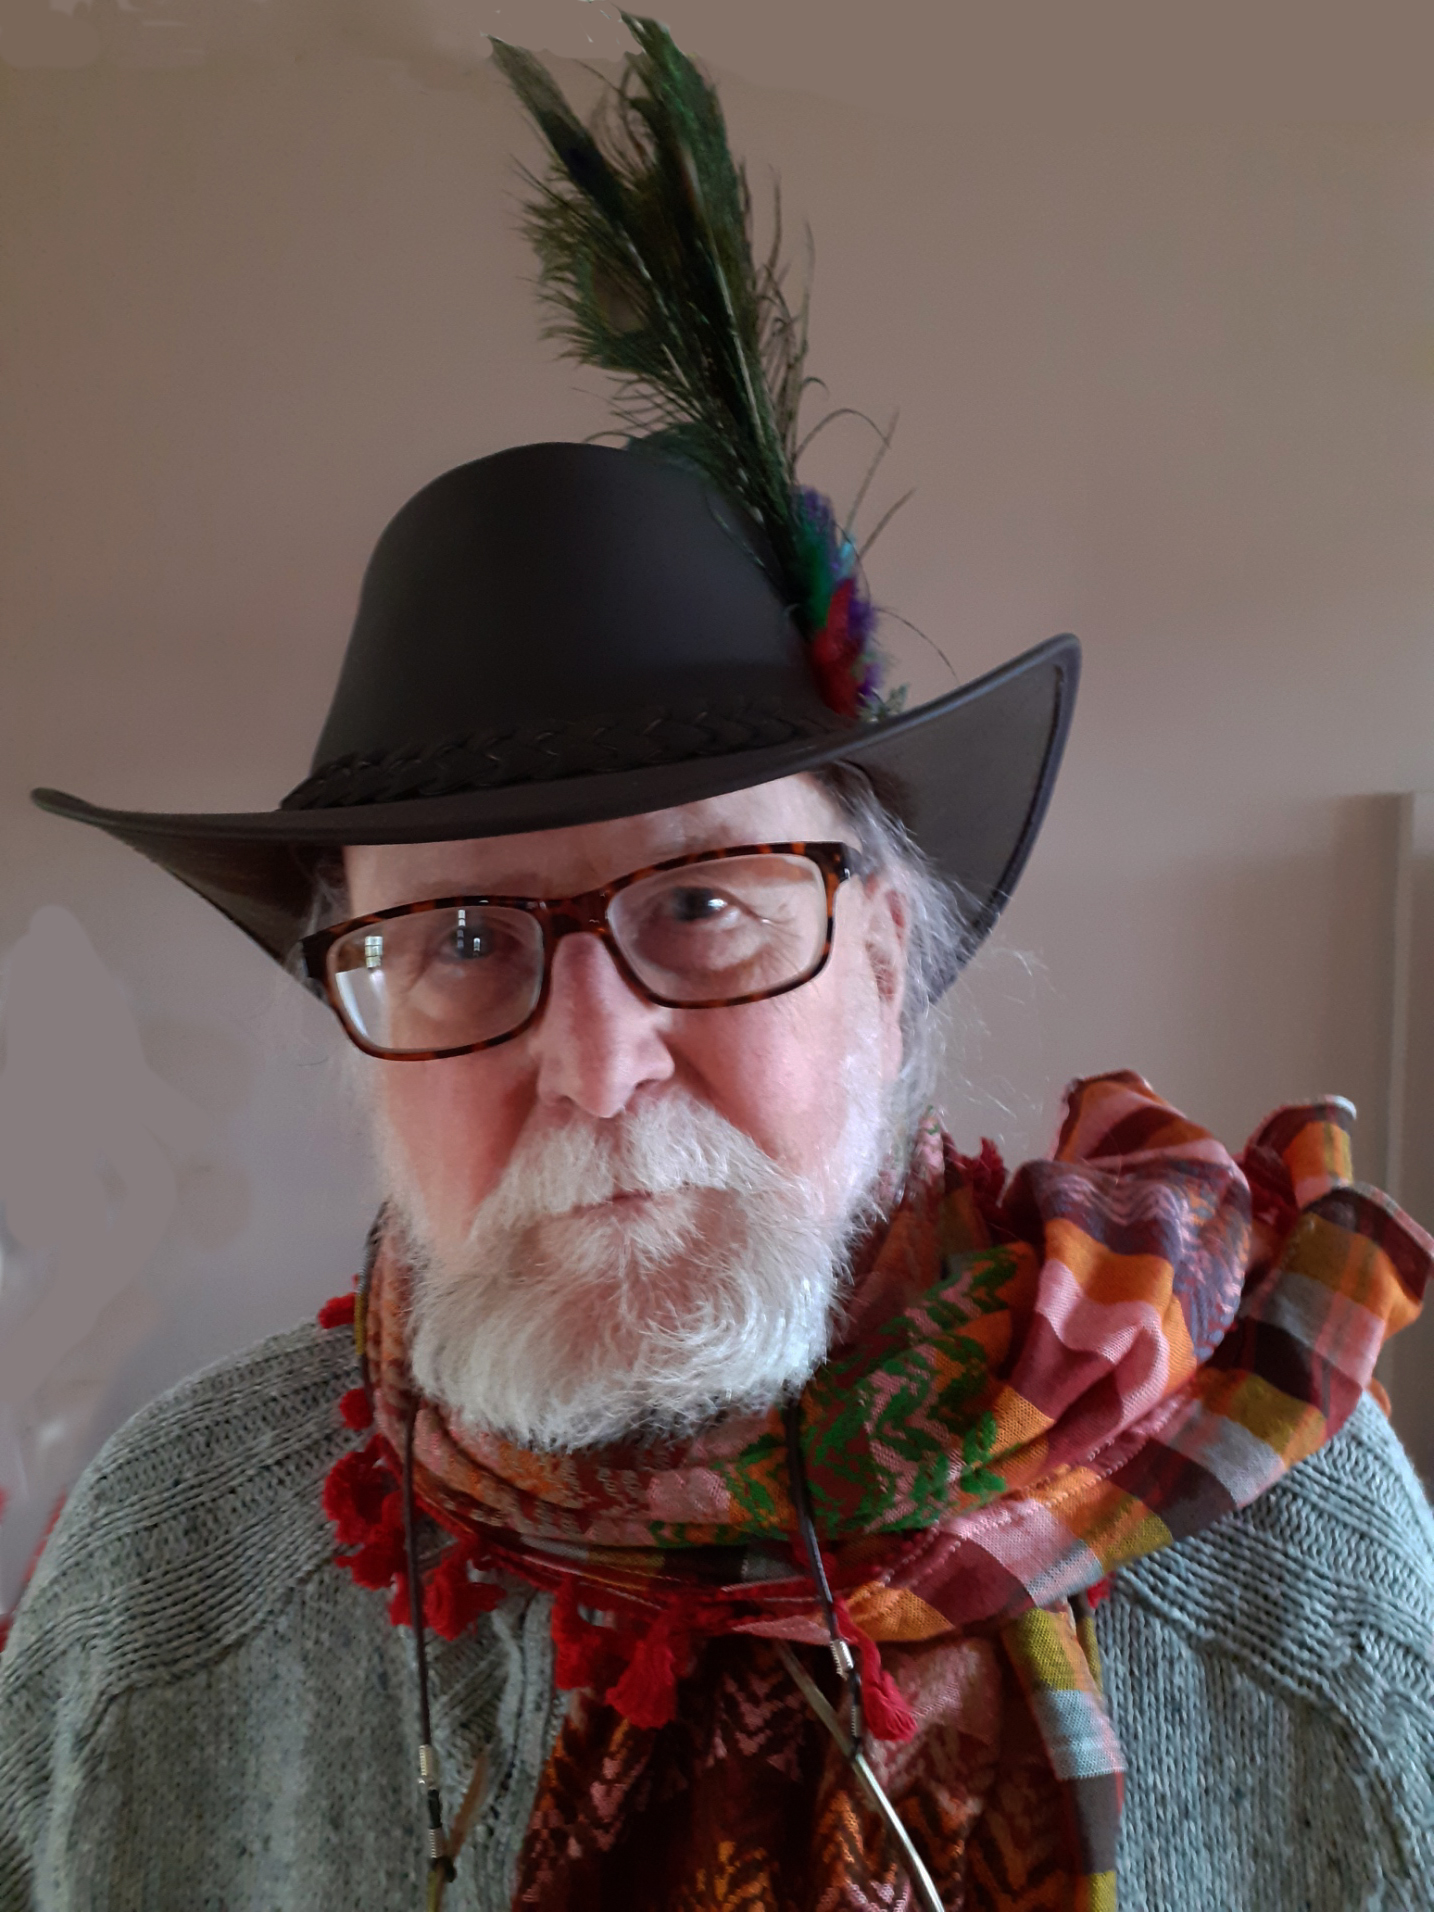 photo of Jeff Merrifield, an older man with a beard, wearing a hat with a feather in